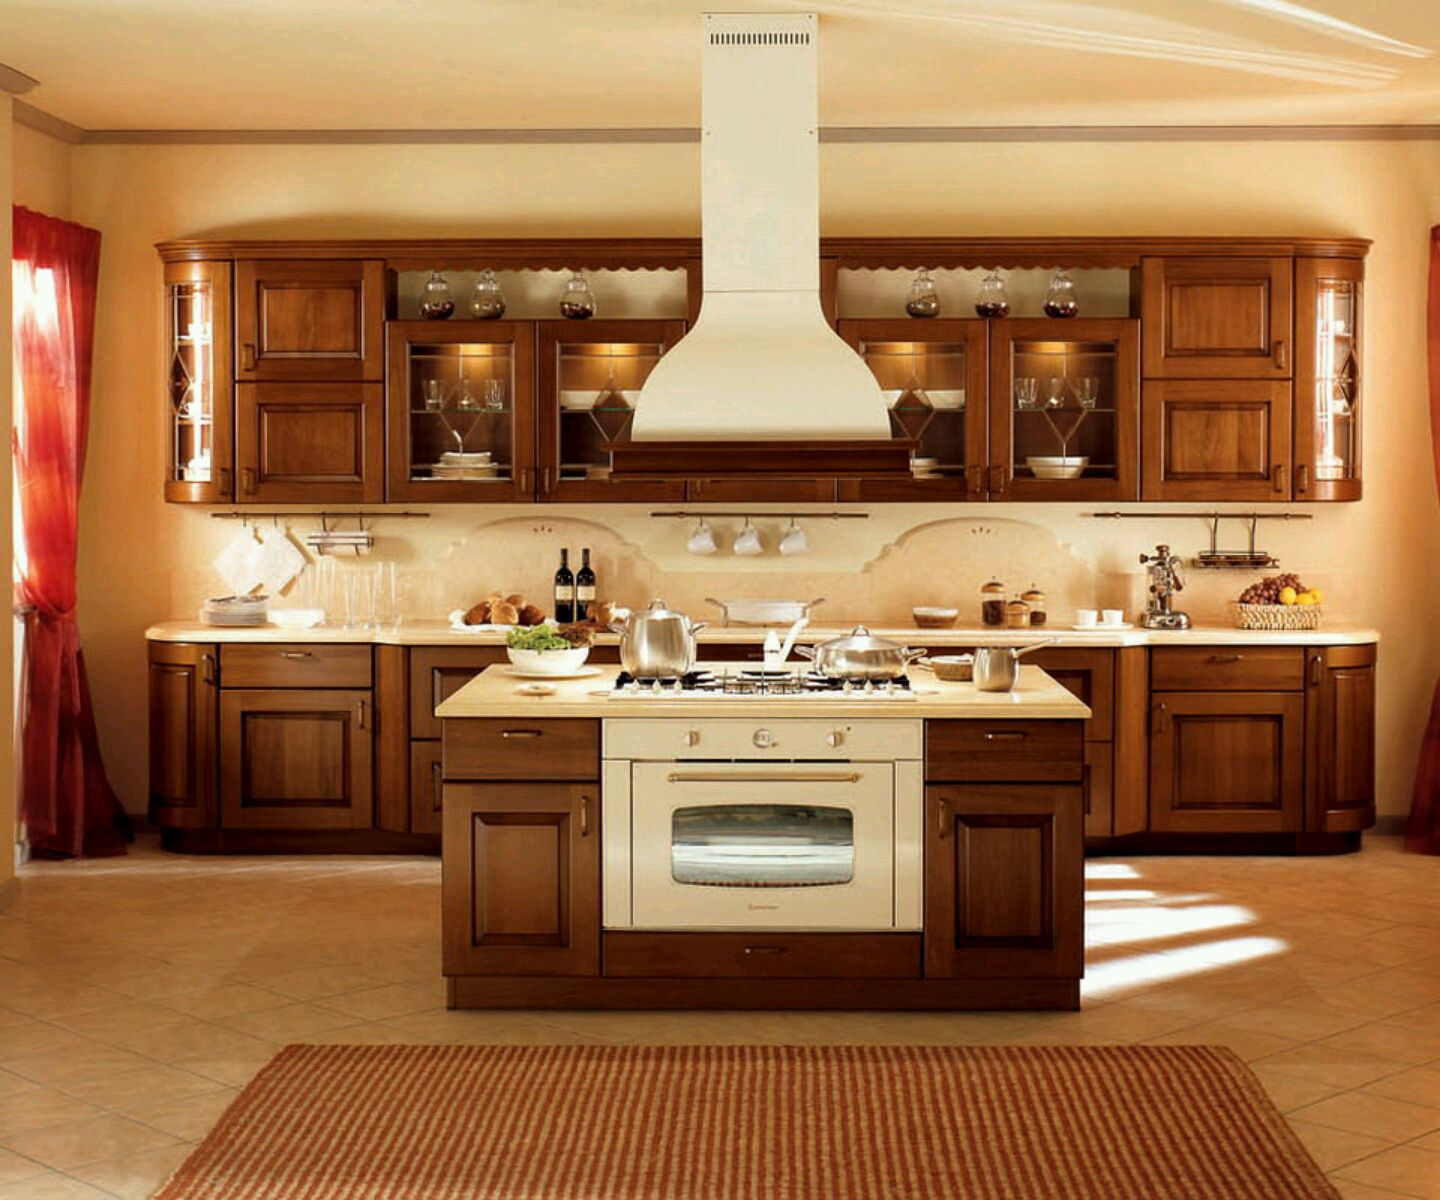 Design For Kitchen Cabinet: Custom Kitchen Cabinets Designs For Your Lovely Kitchen